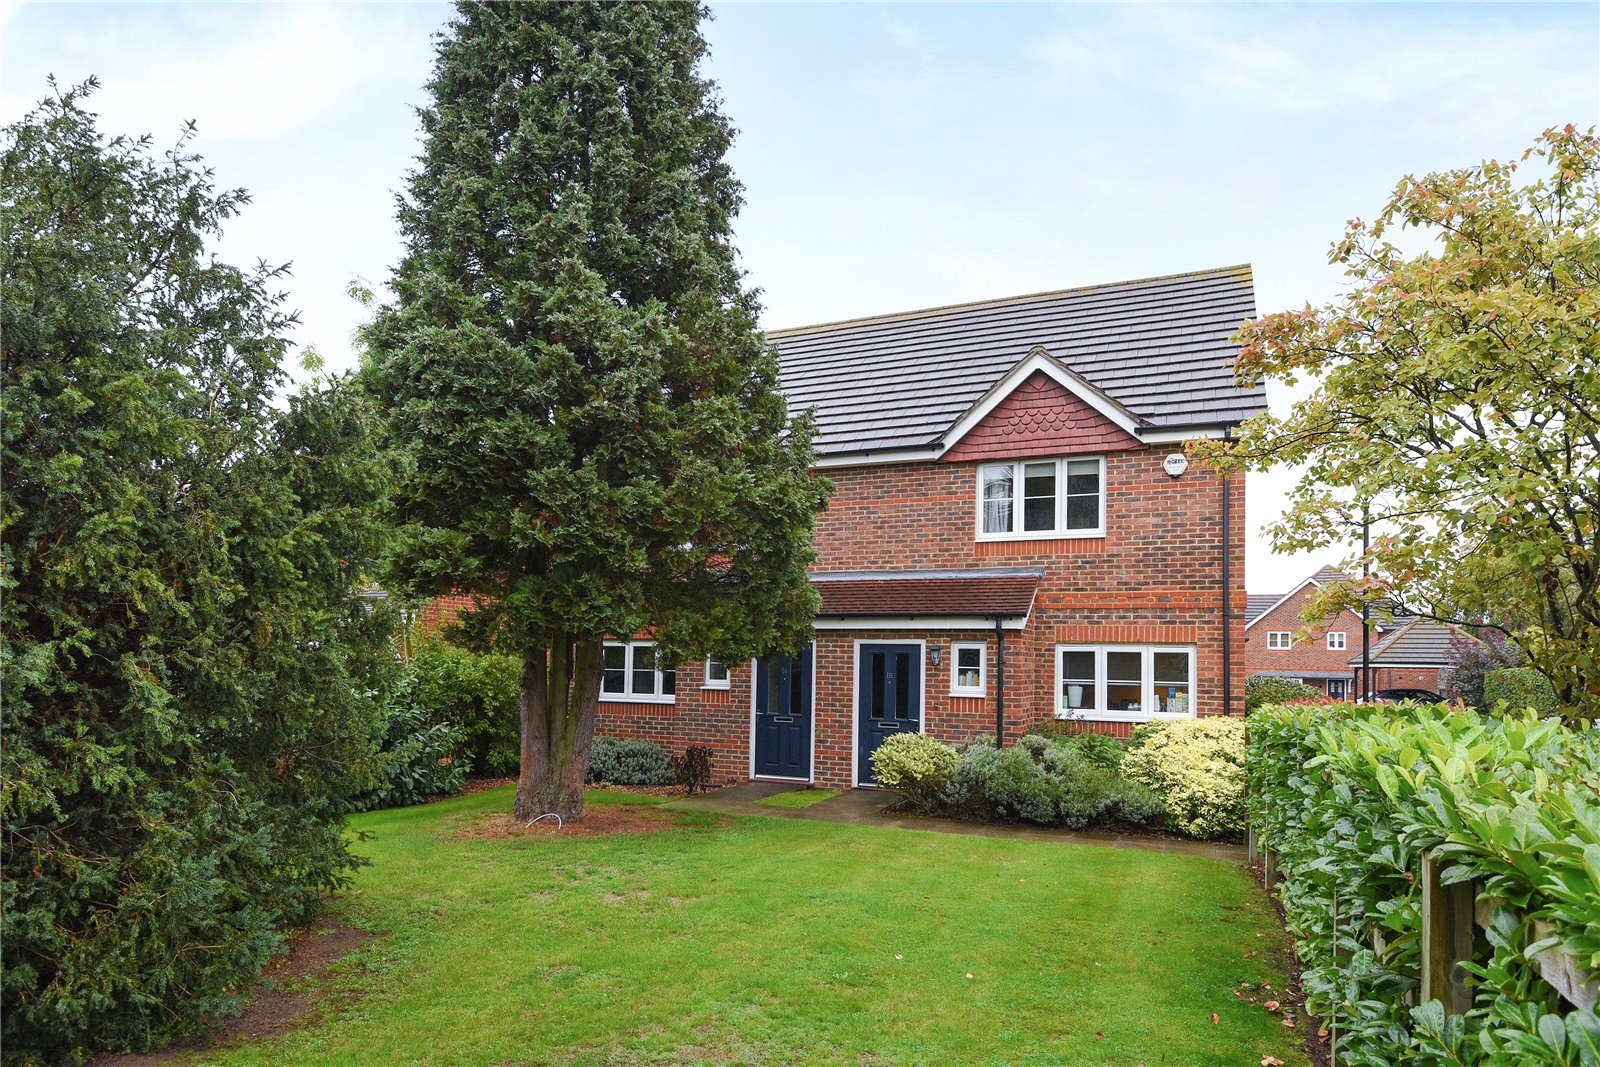 3 Bedrooms Semi Detached House for sale in Locksley Gardens, Winnersh, Wokingham, Berkshire, RG41